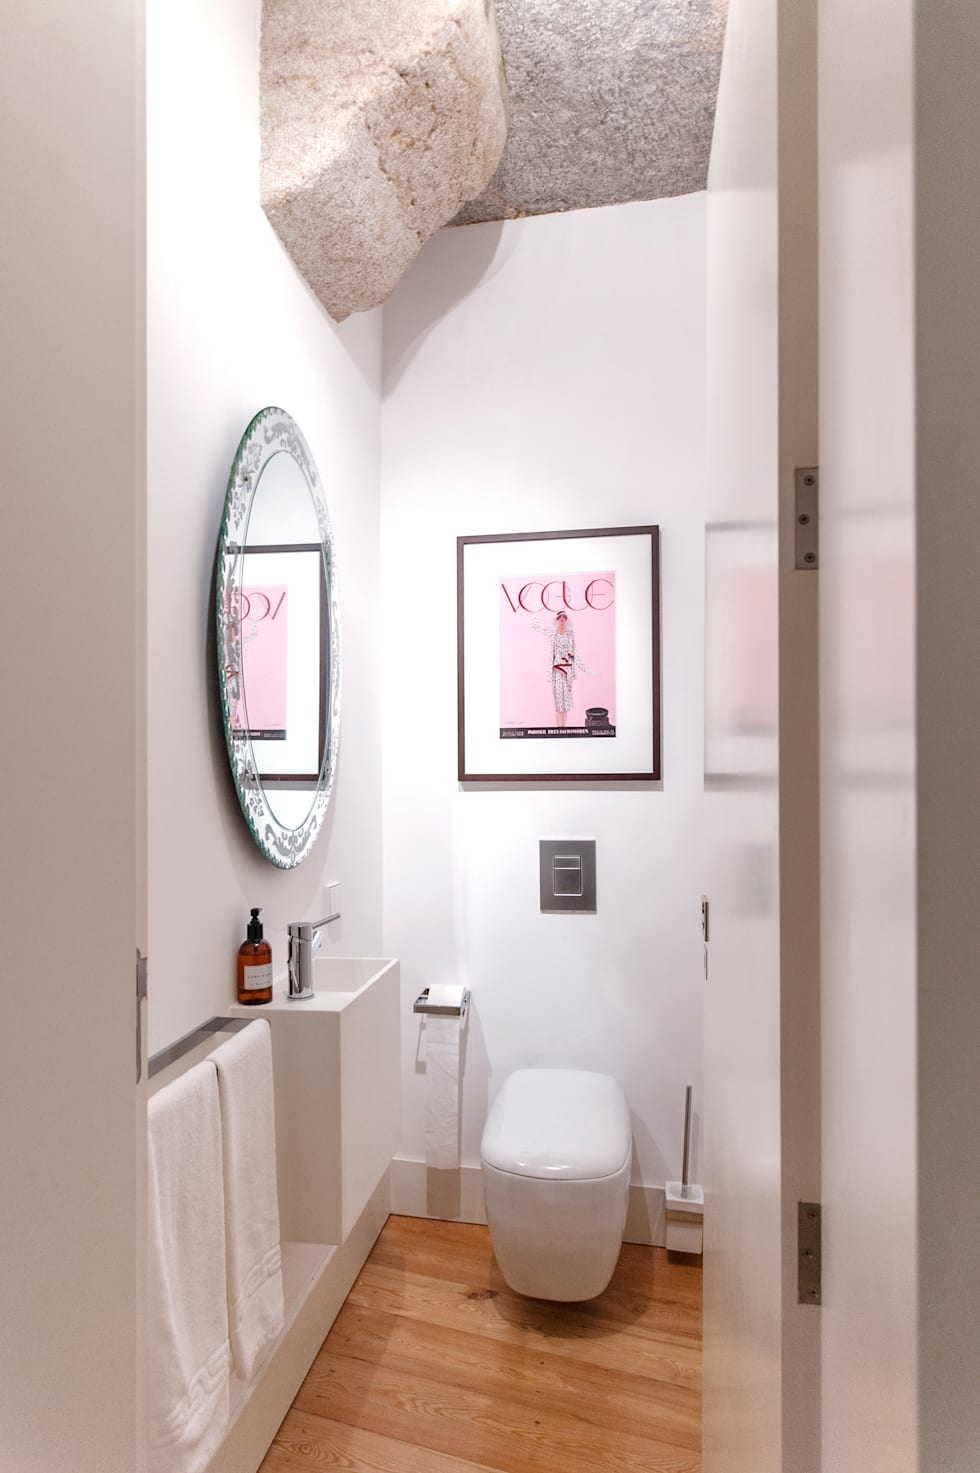 12 helpful ideas you can use in your own little bathroom